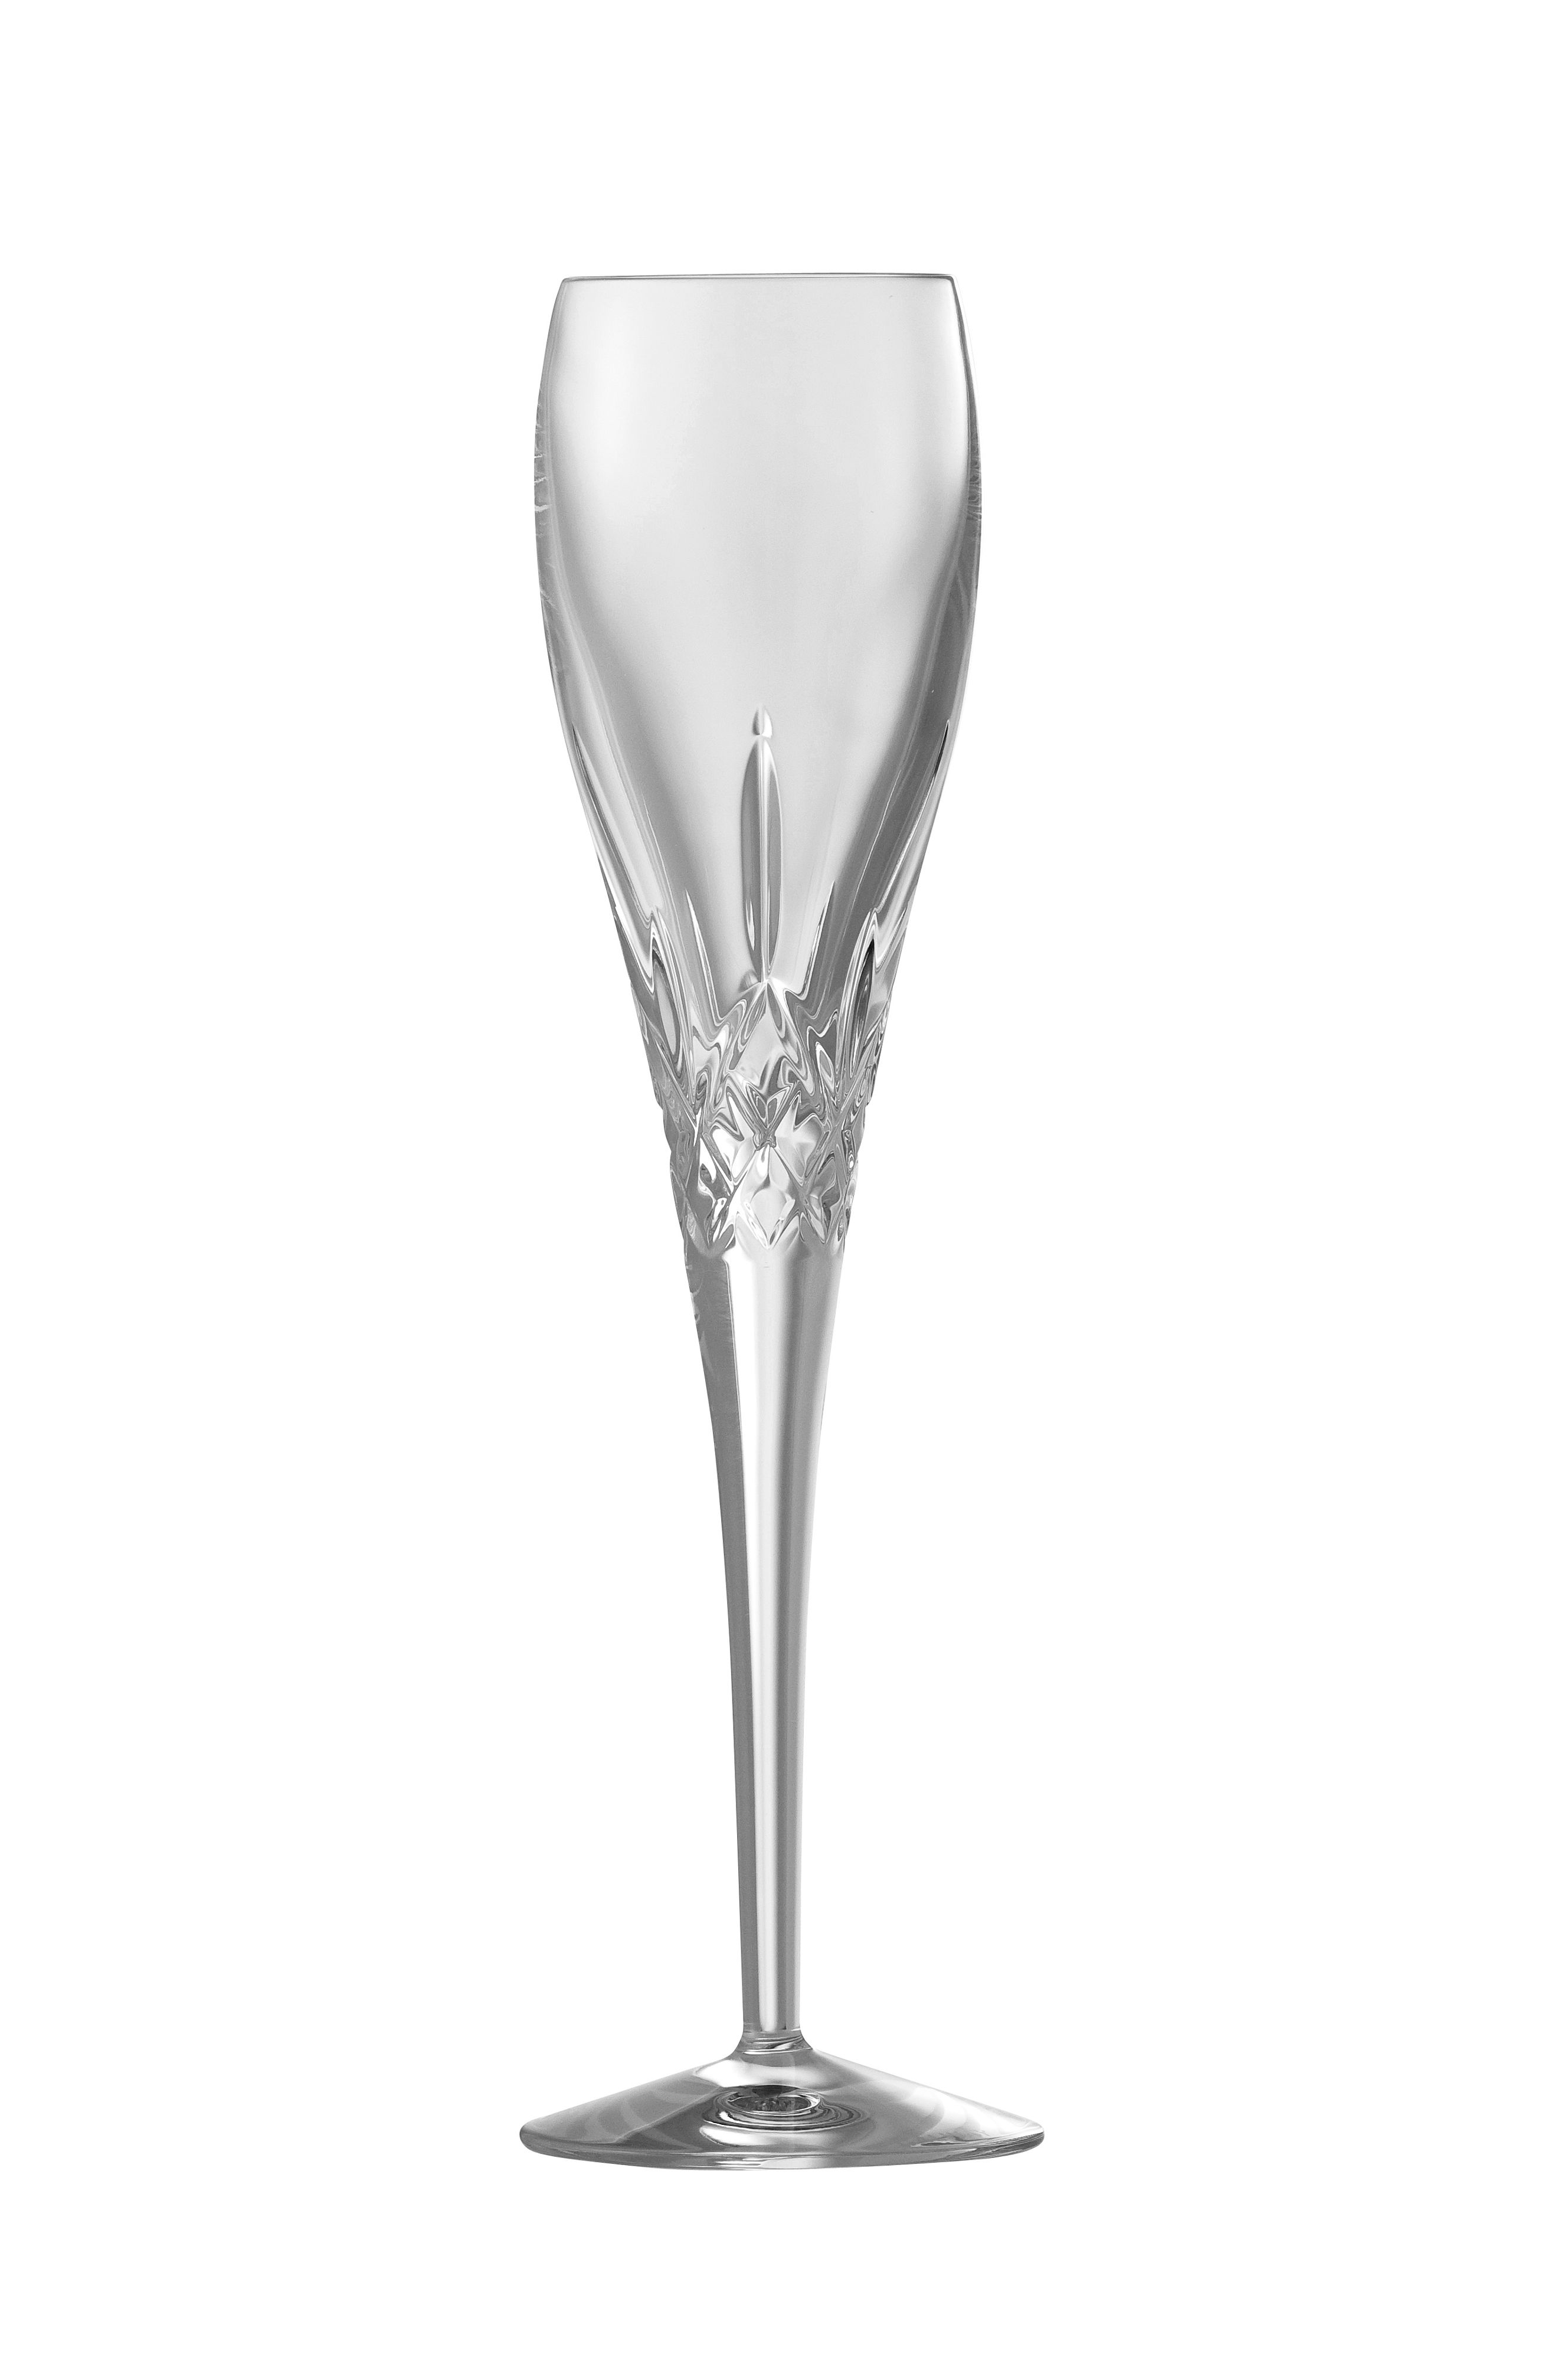 Longford Clear Crystal Glassware Range